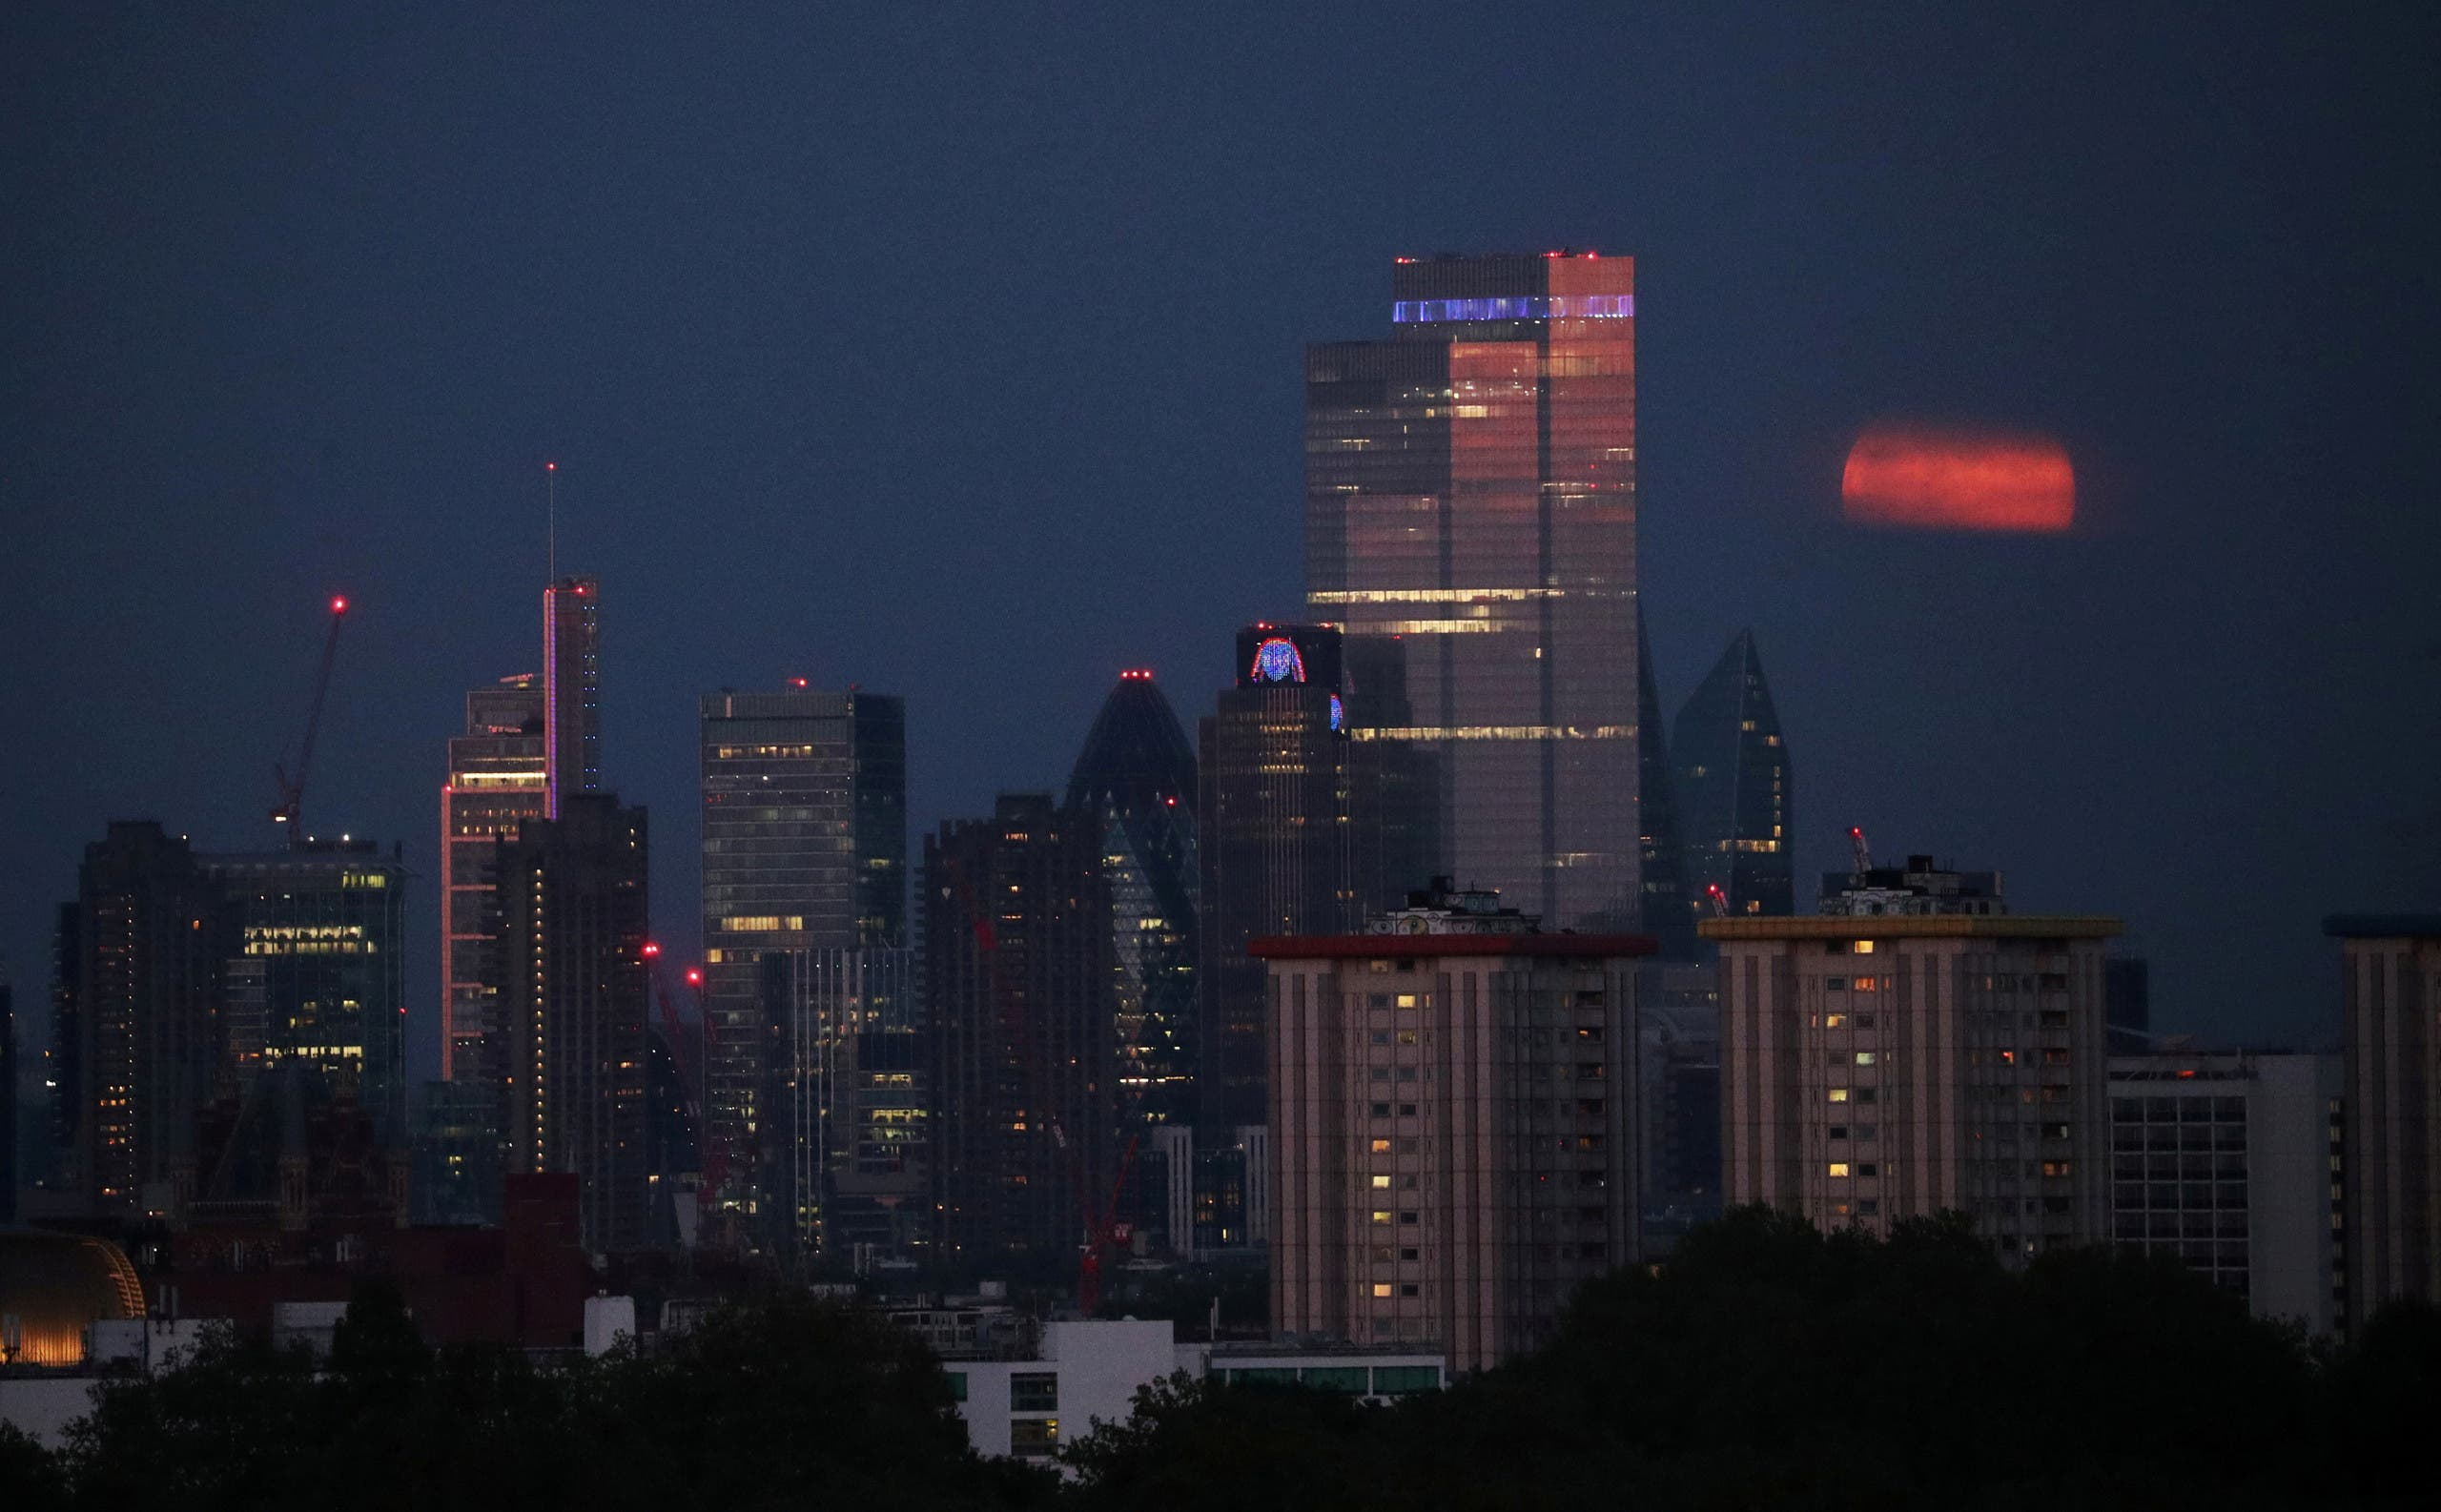 London ranked first in Knight Frank's (Y)OUR SPACE survey with 3,000 environmentally accredited buildings. (File photo: Reuters)